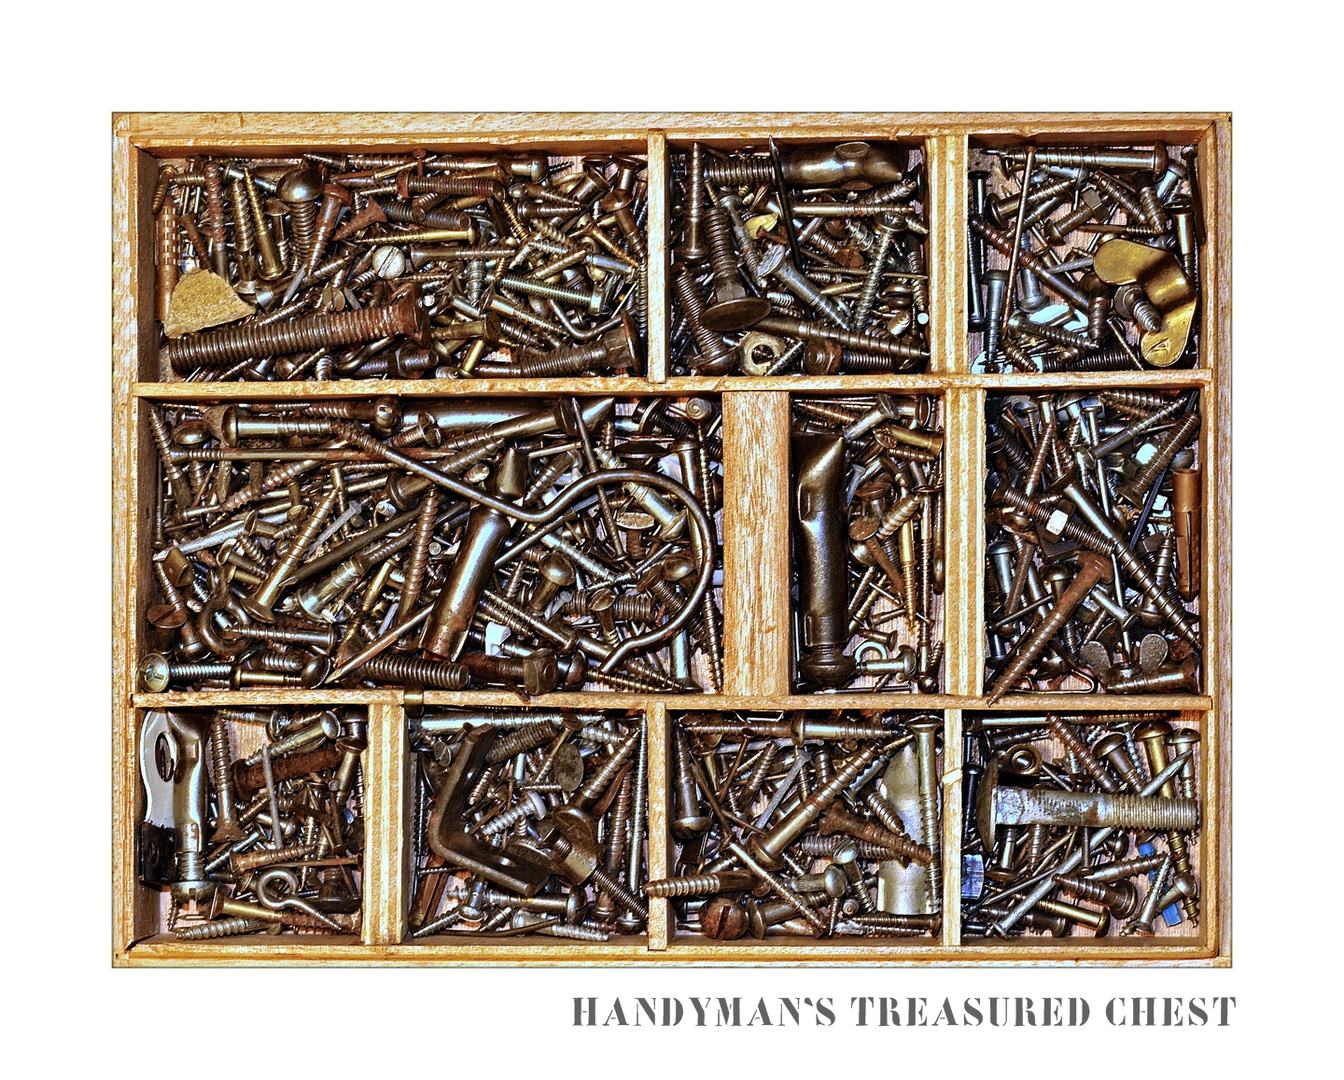 Handyman's treasured chest